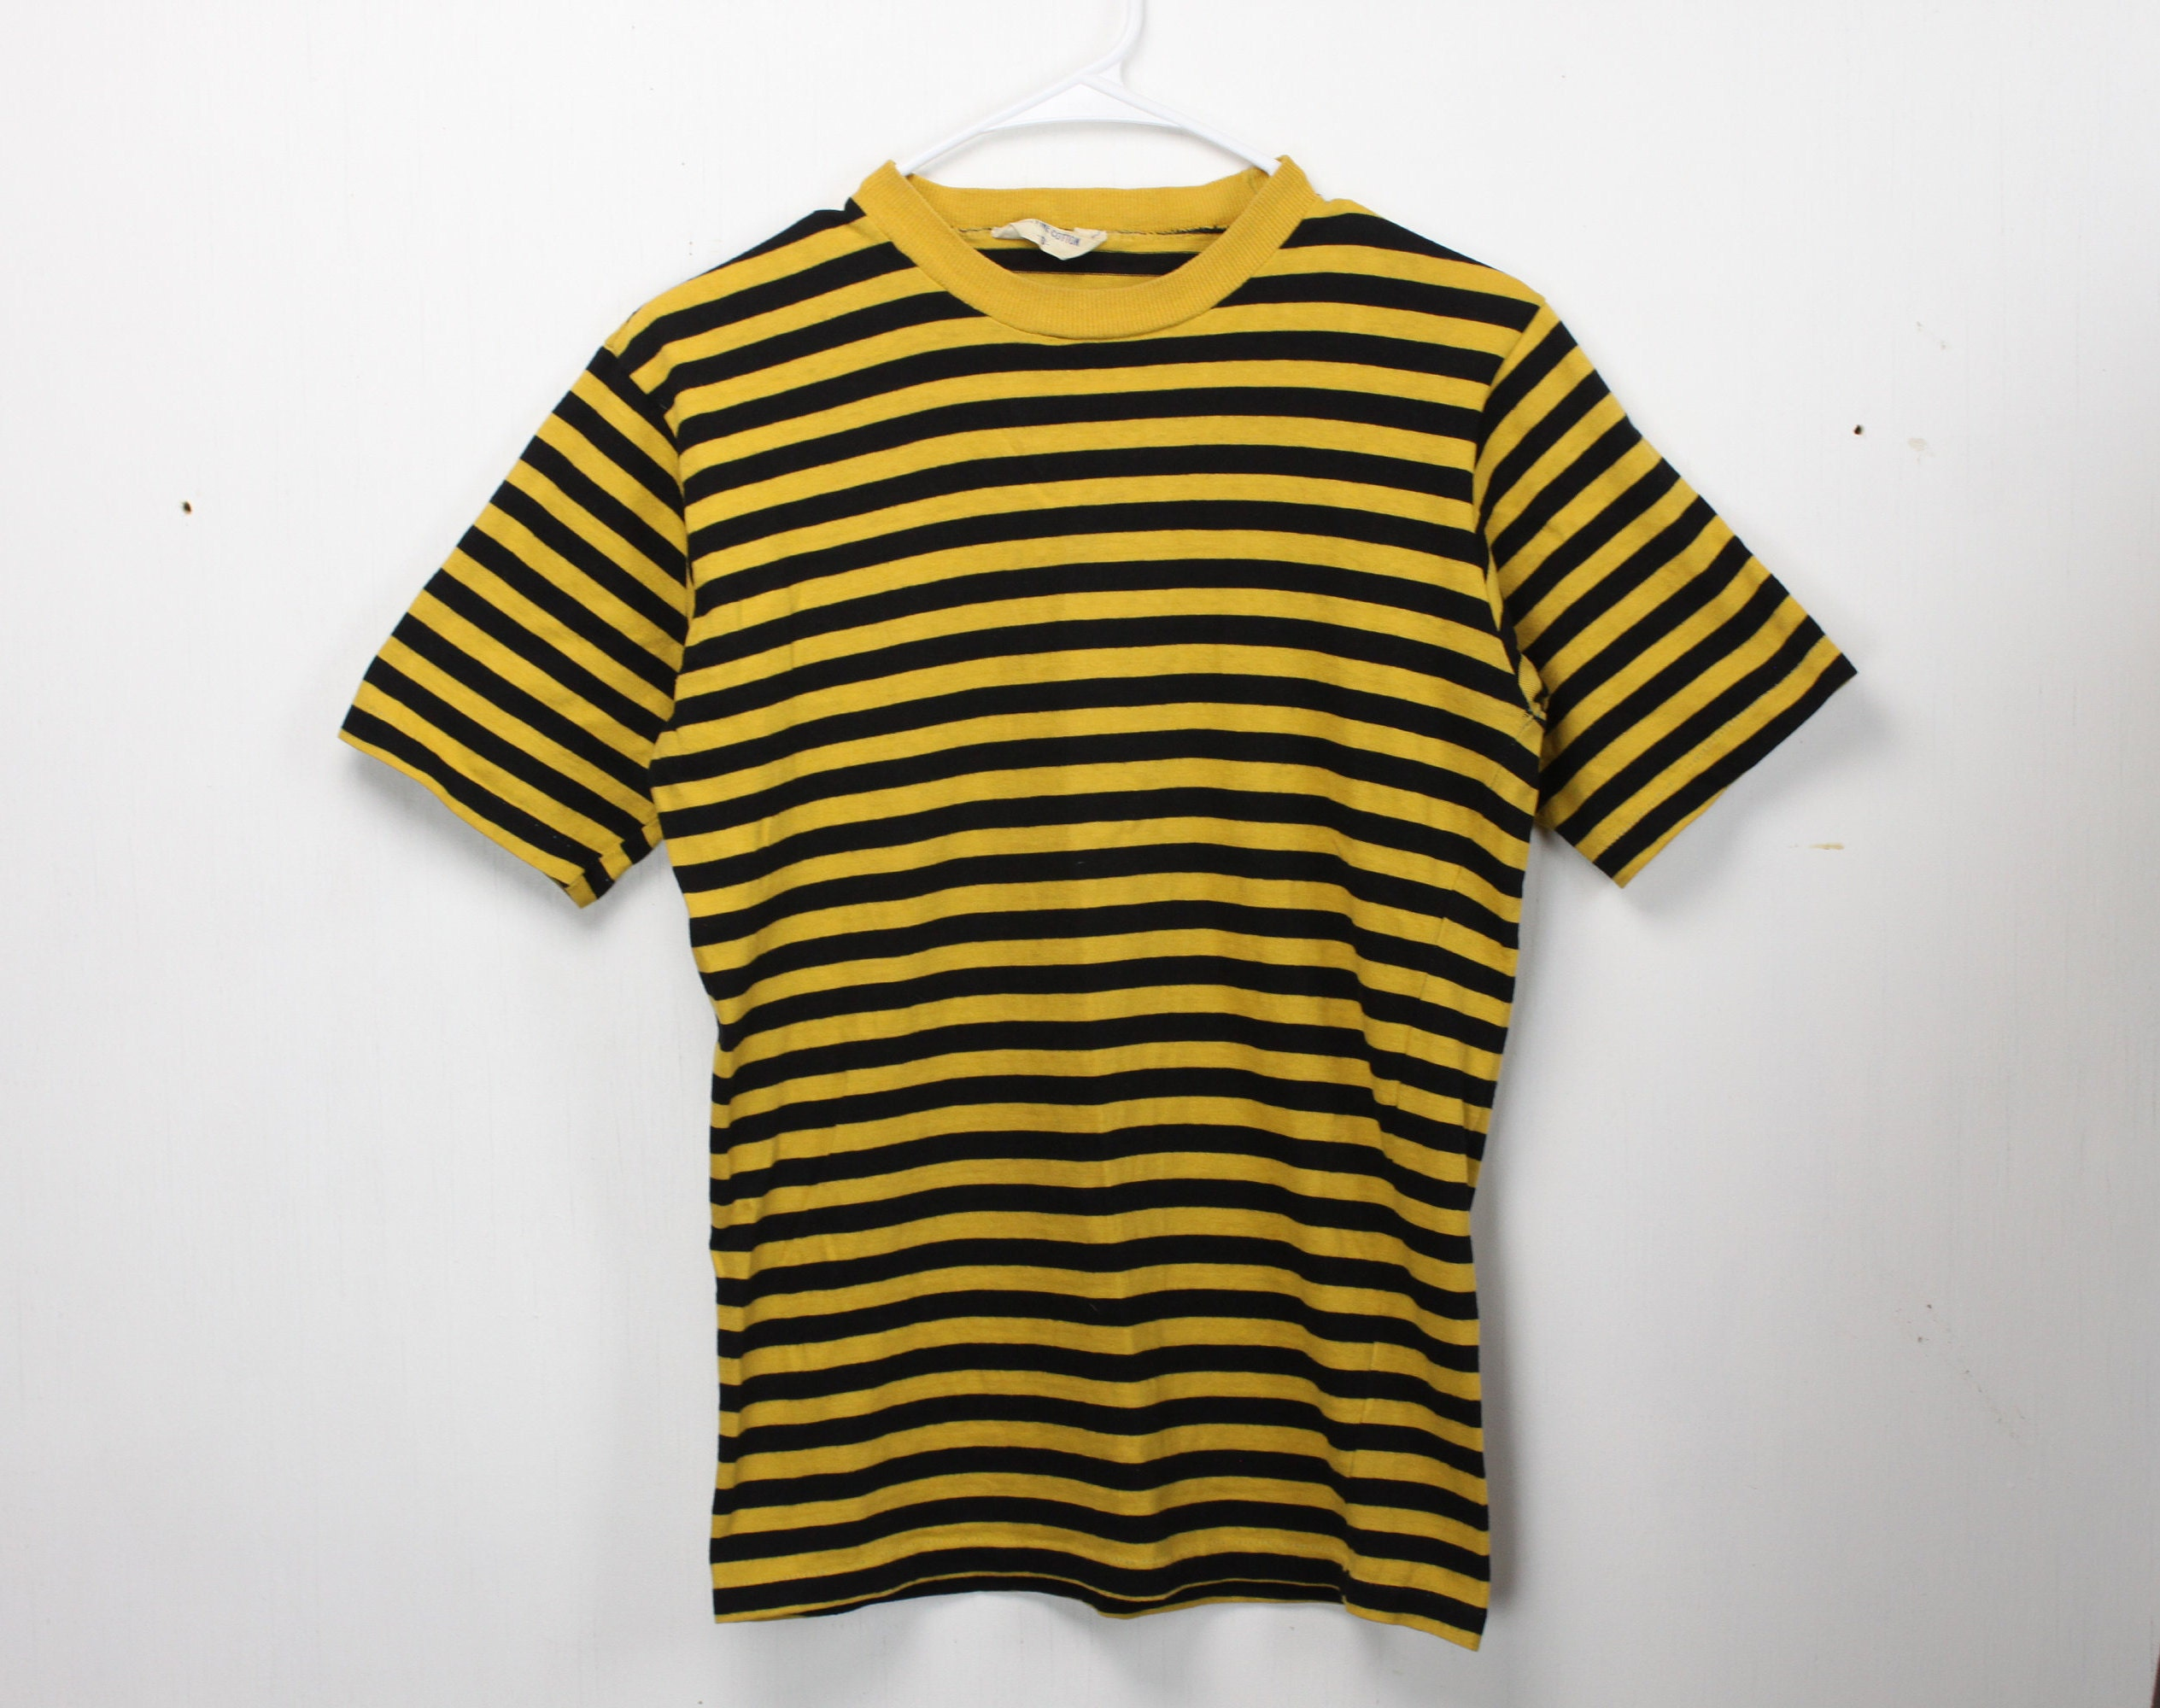 1255bcba5c Vintage Men's T-shirt - Yellow / Black Stripe - Small - Single Needle ...